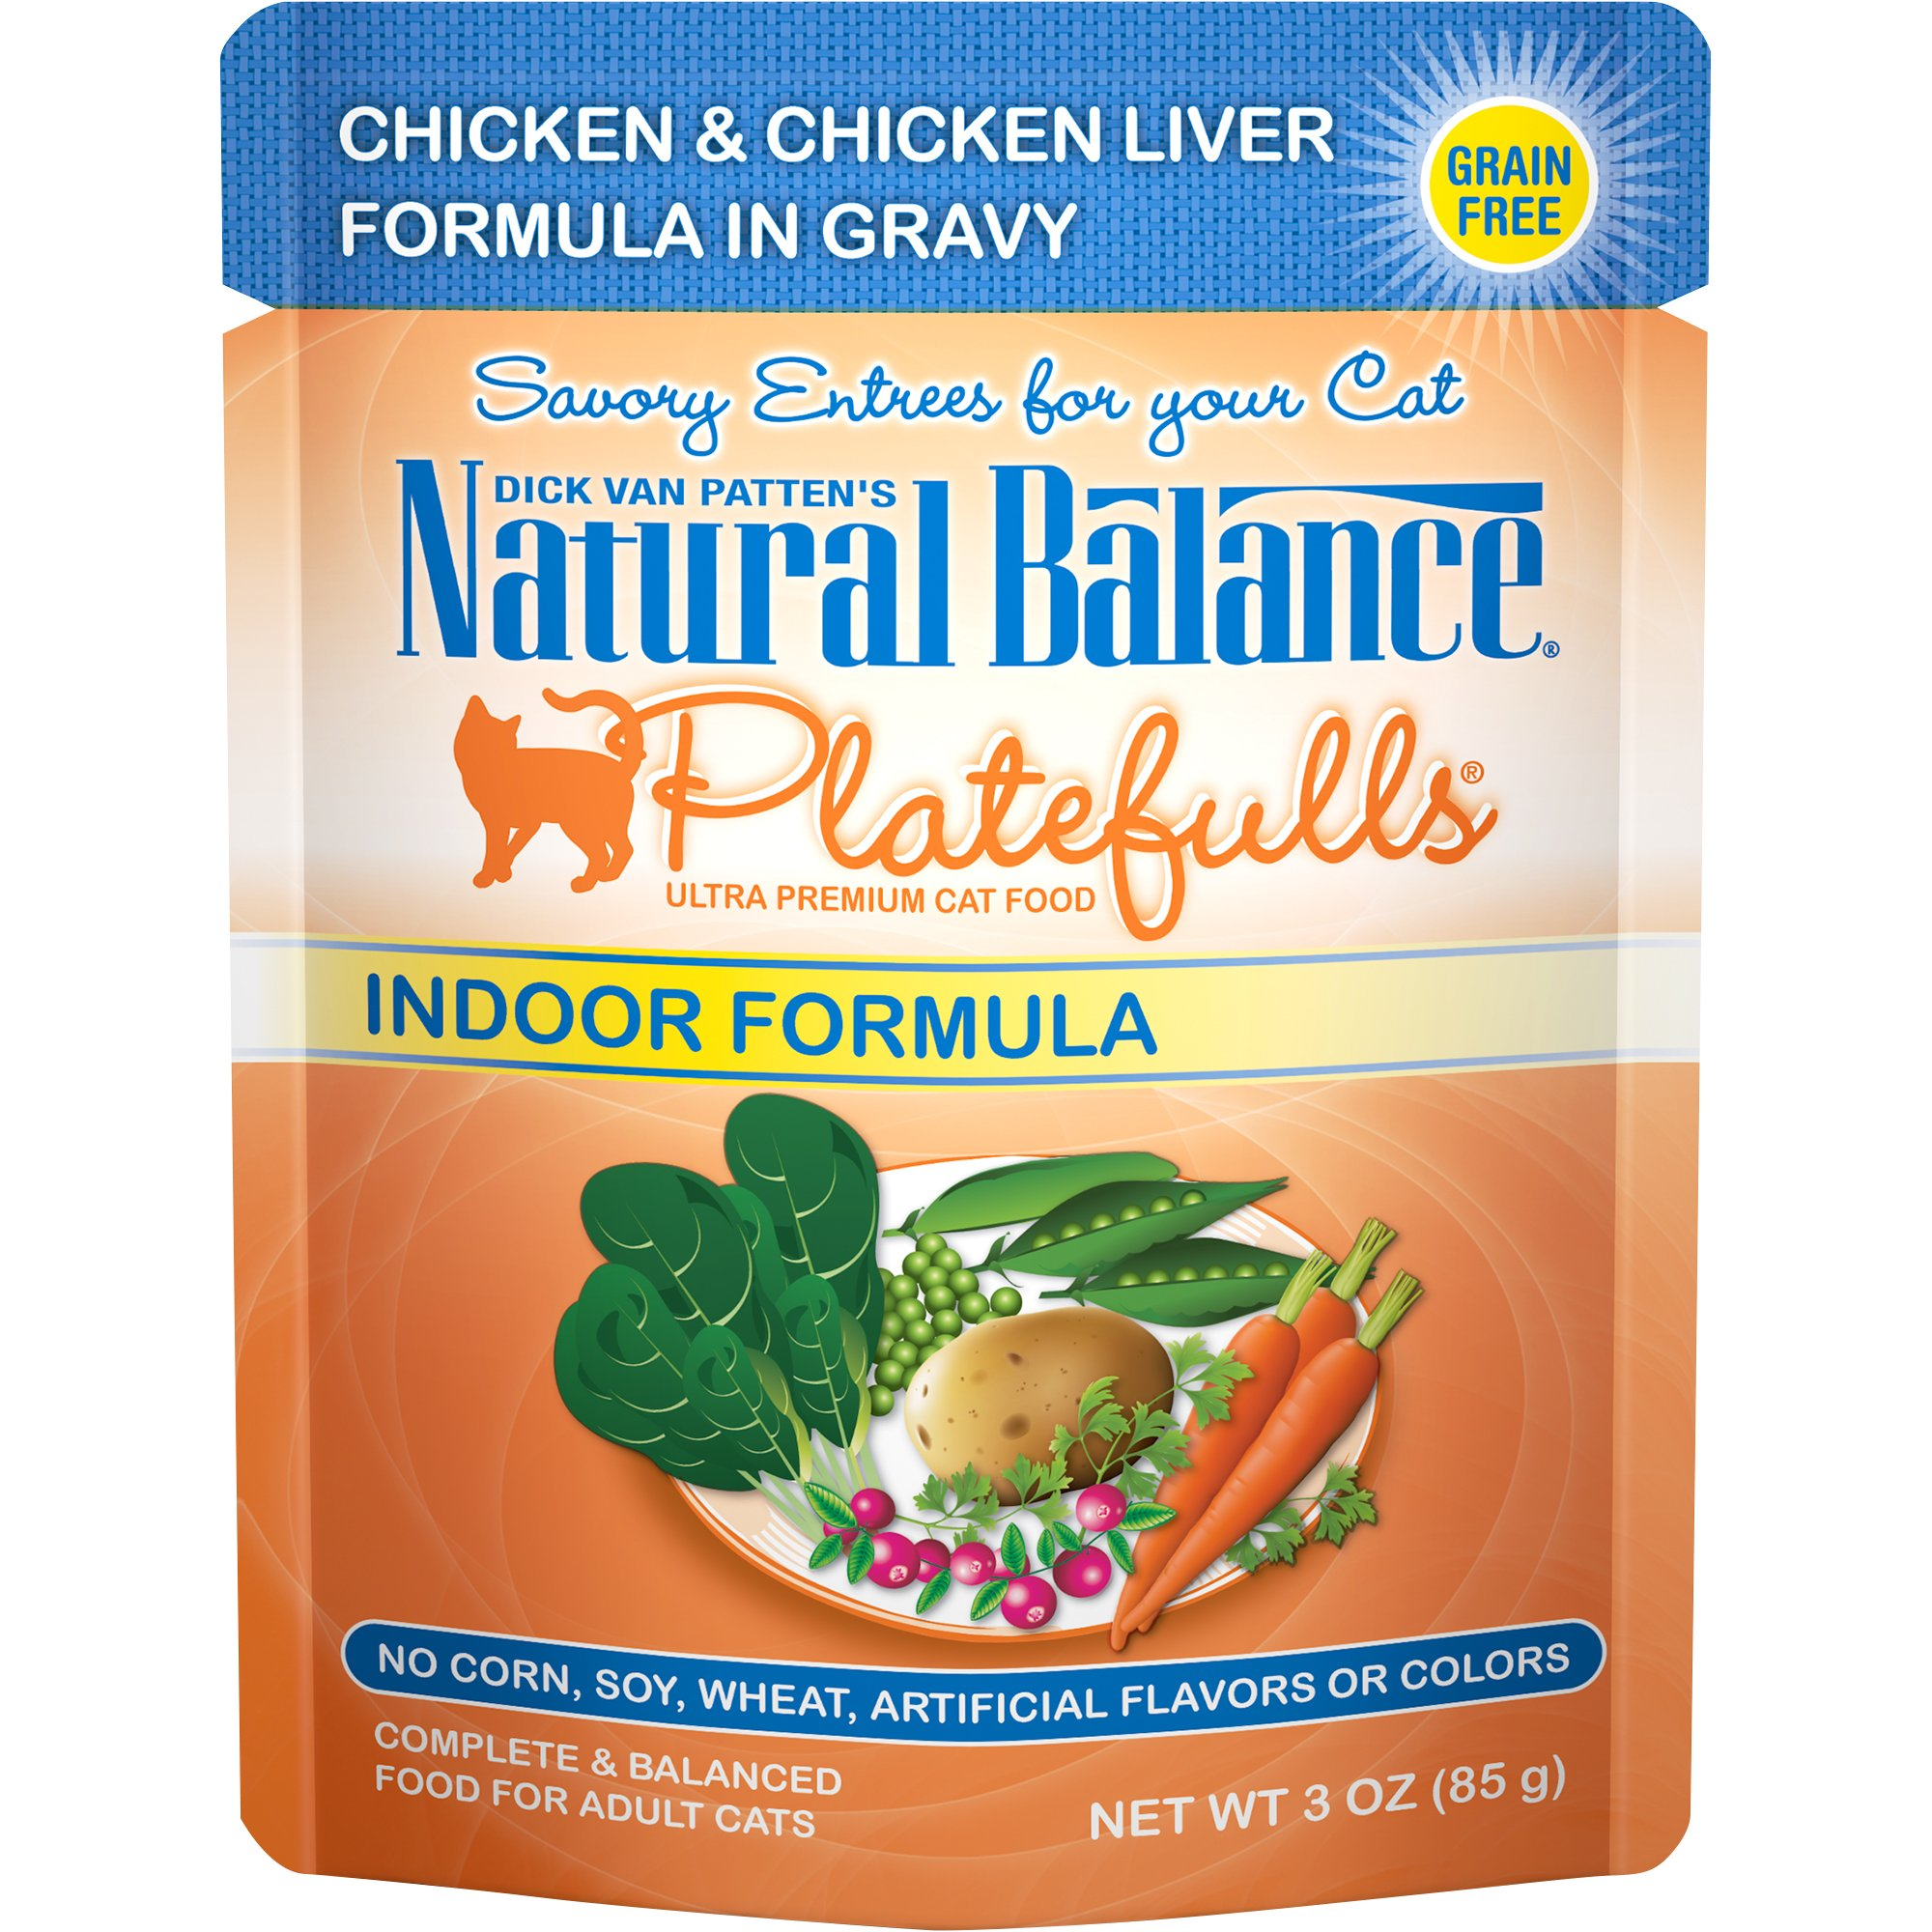 Natural Balance Platefulls Grain Free Indoor Cat Food, Indoor Chicken and Chicken Liver Formula in Gravy, 3-Ounce Pouches (Pack of 24)